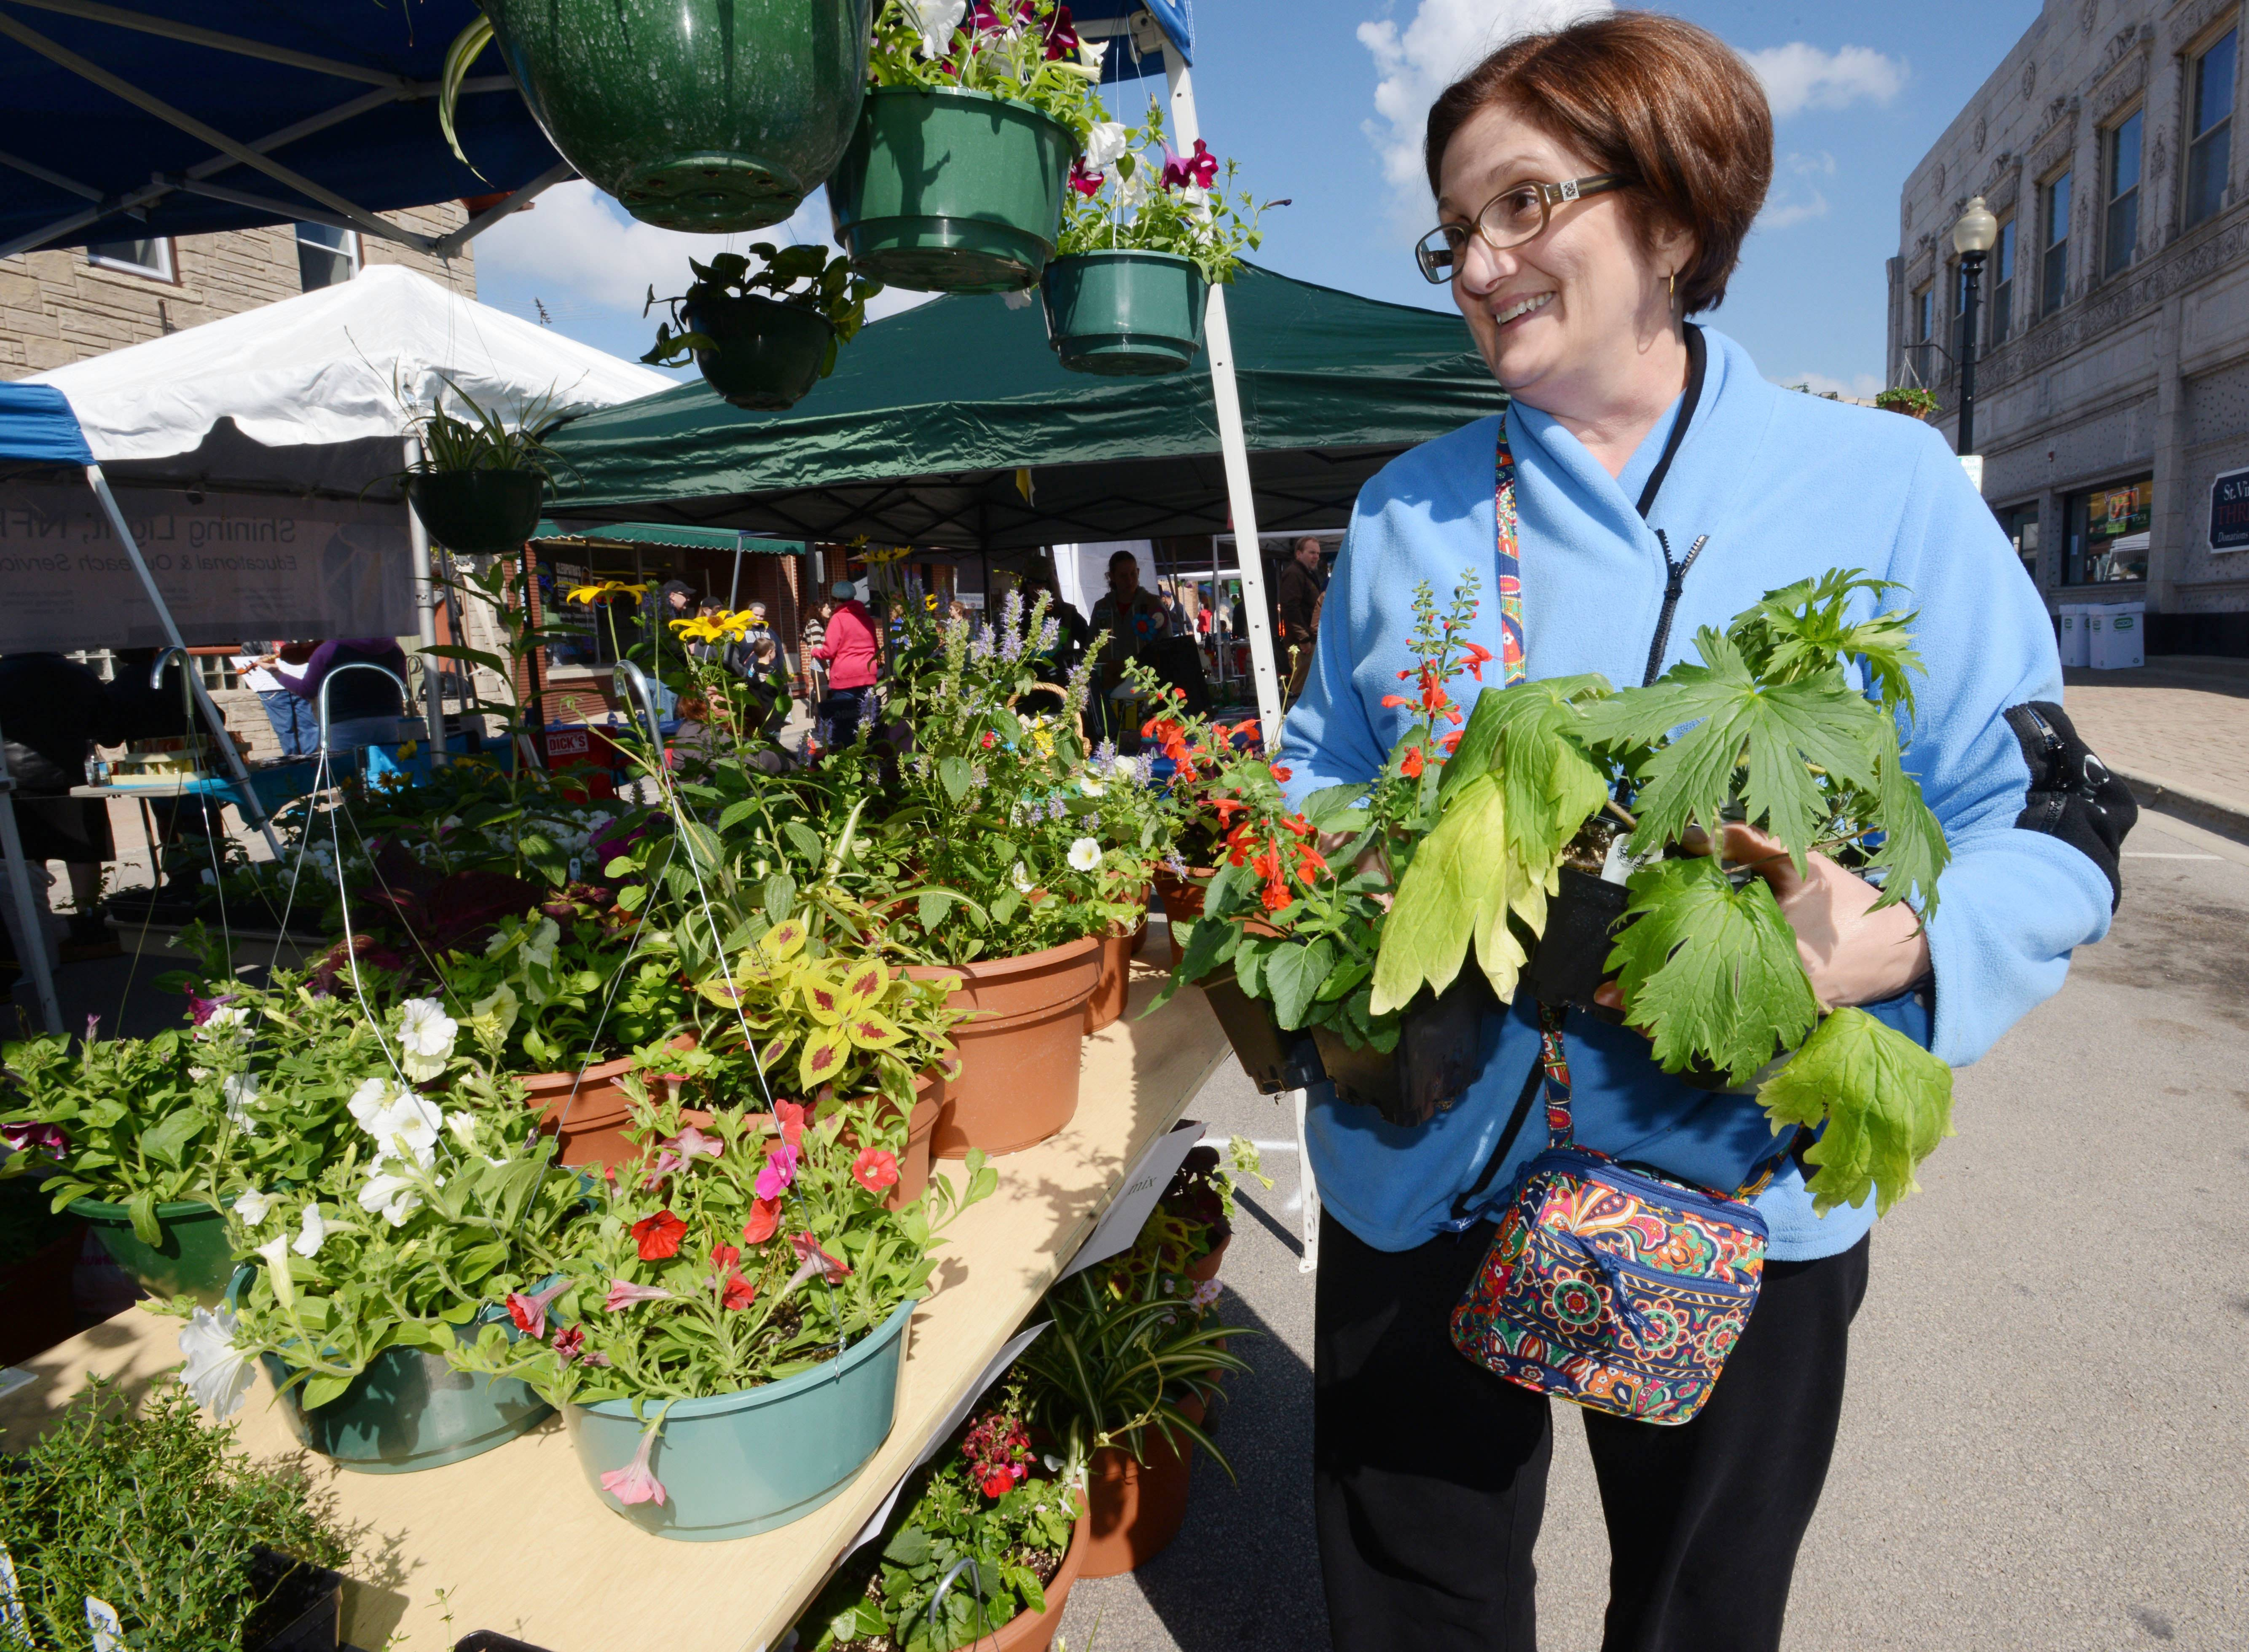 West Chicago's Blooming Fest 2018 returns to downtown from 9 a.m. to 3 p.m. Saturday with a variety of vendors, activities and plenty of plants.